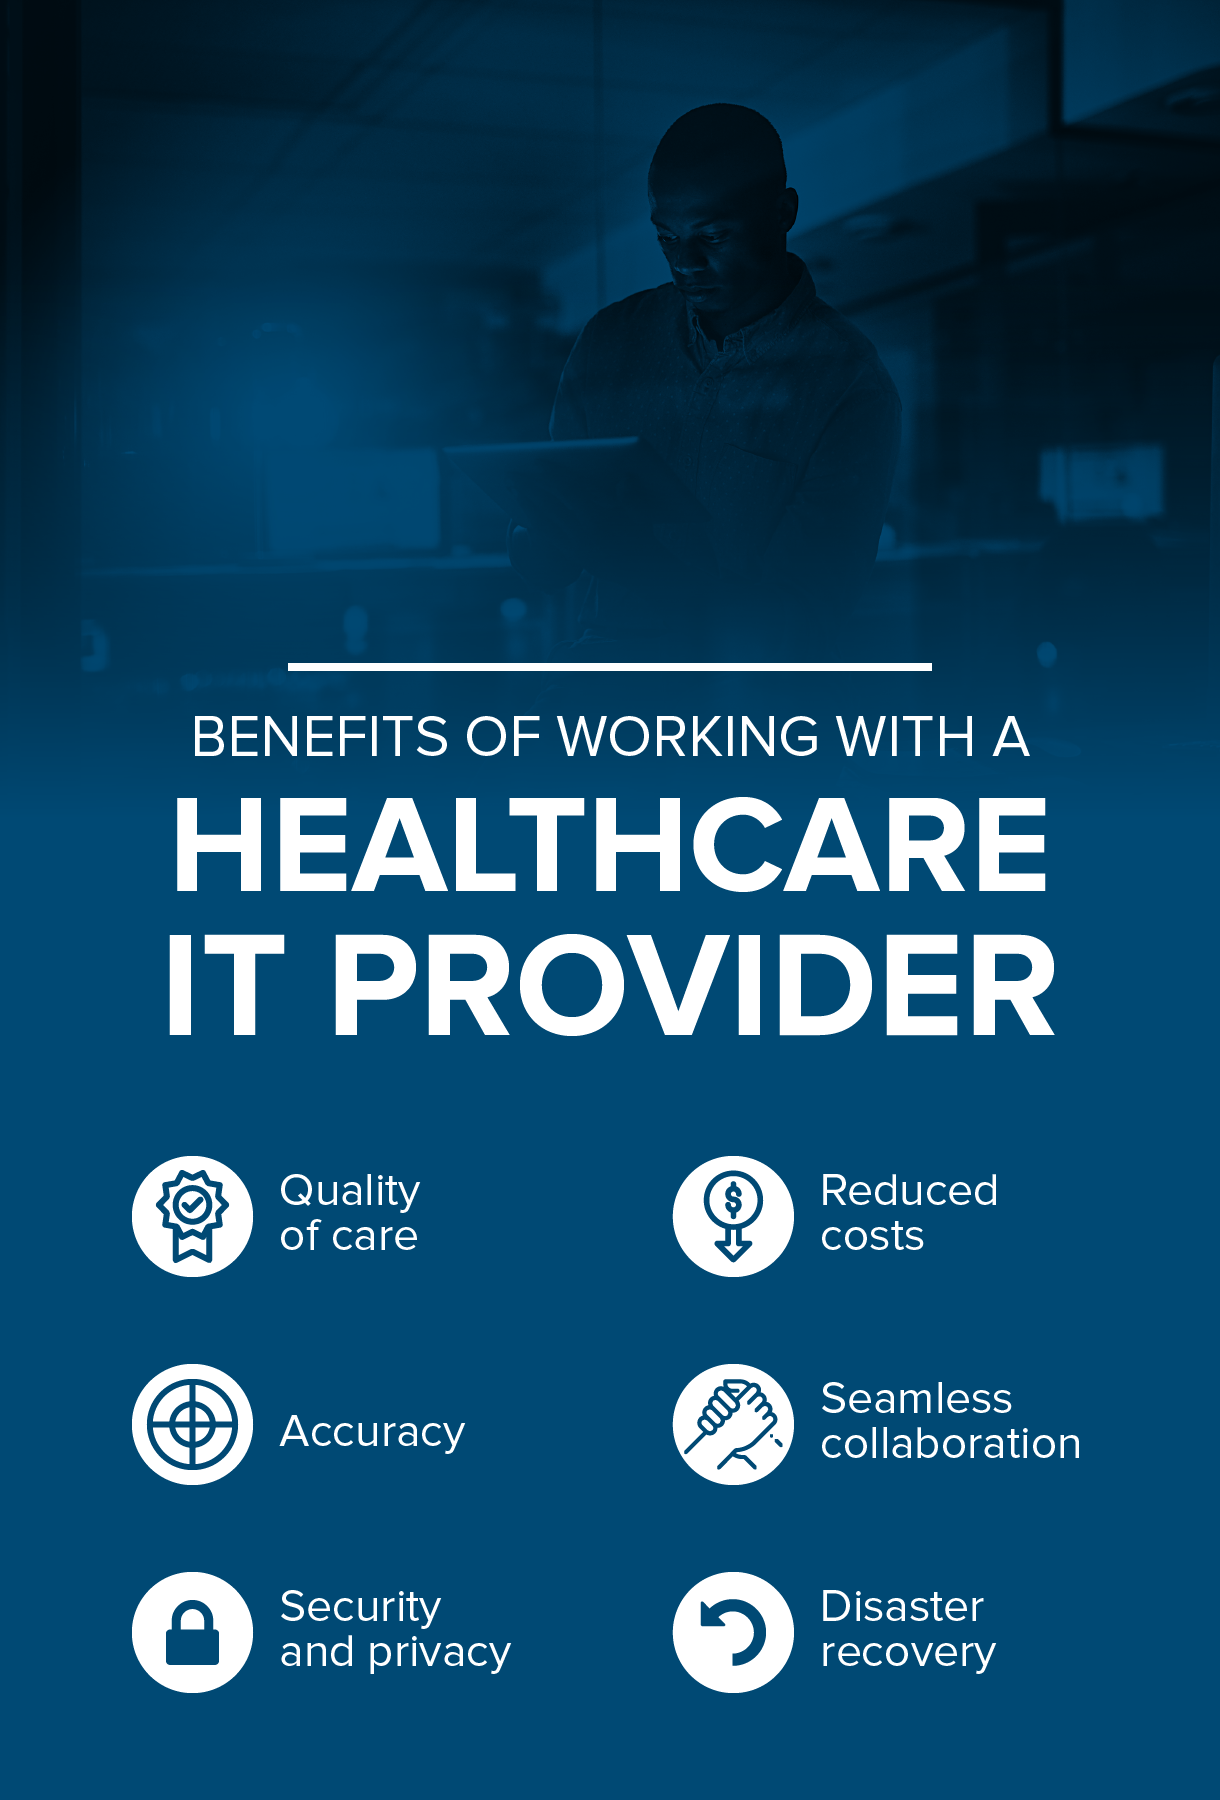 The benefits of working with a healthcare IT provider